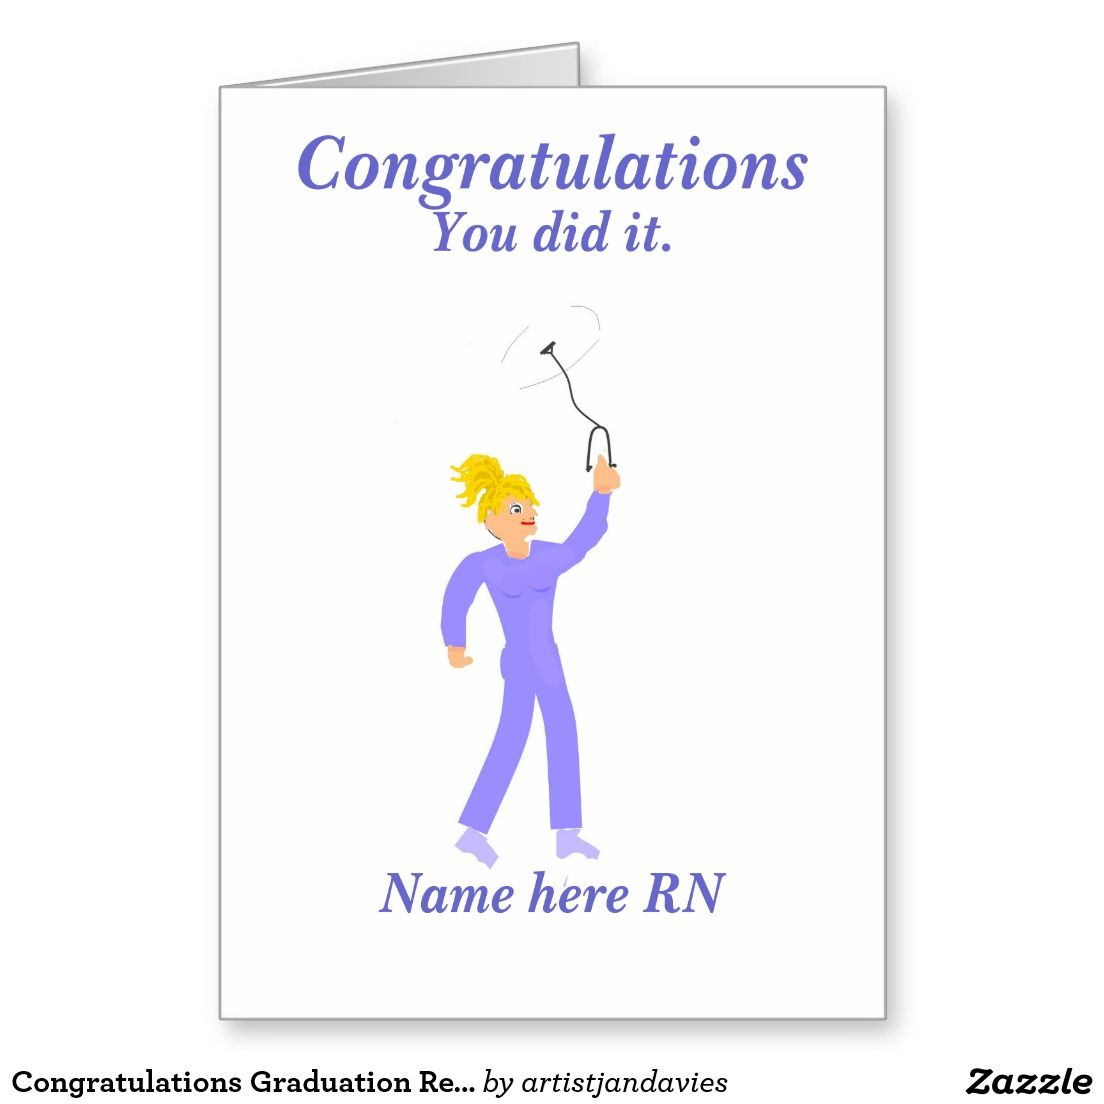 Congratulations graduation registered nurse greeting card cards congratulations graduation registered nurse greeting card kristyandbryce Gallery